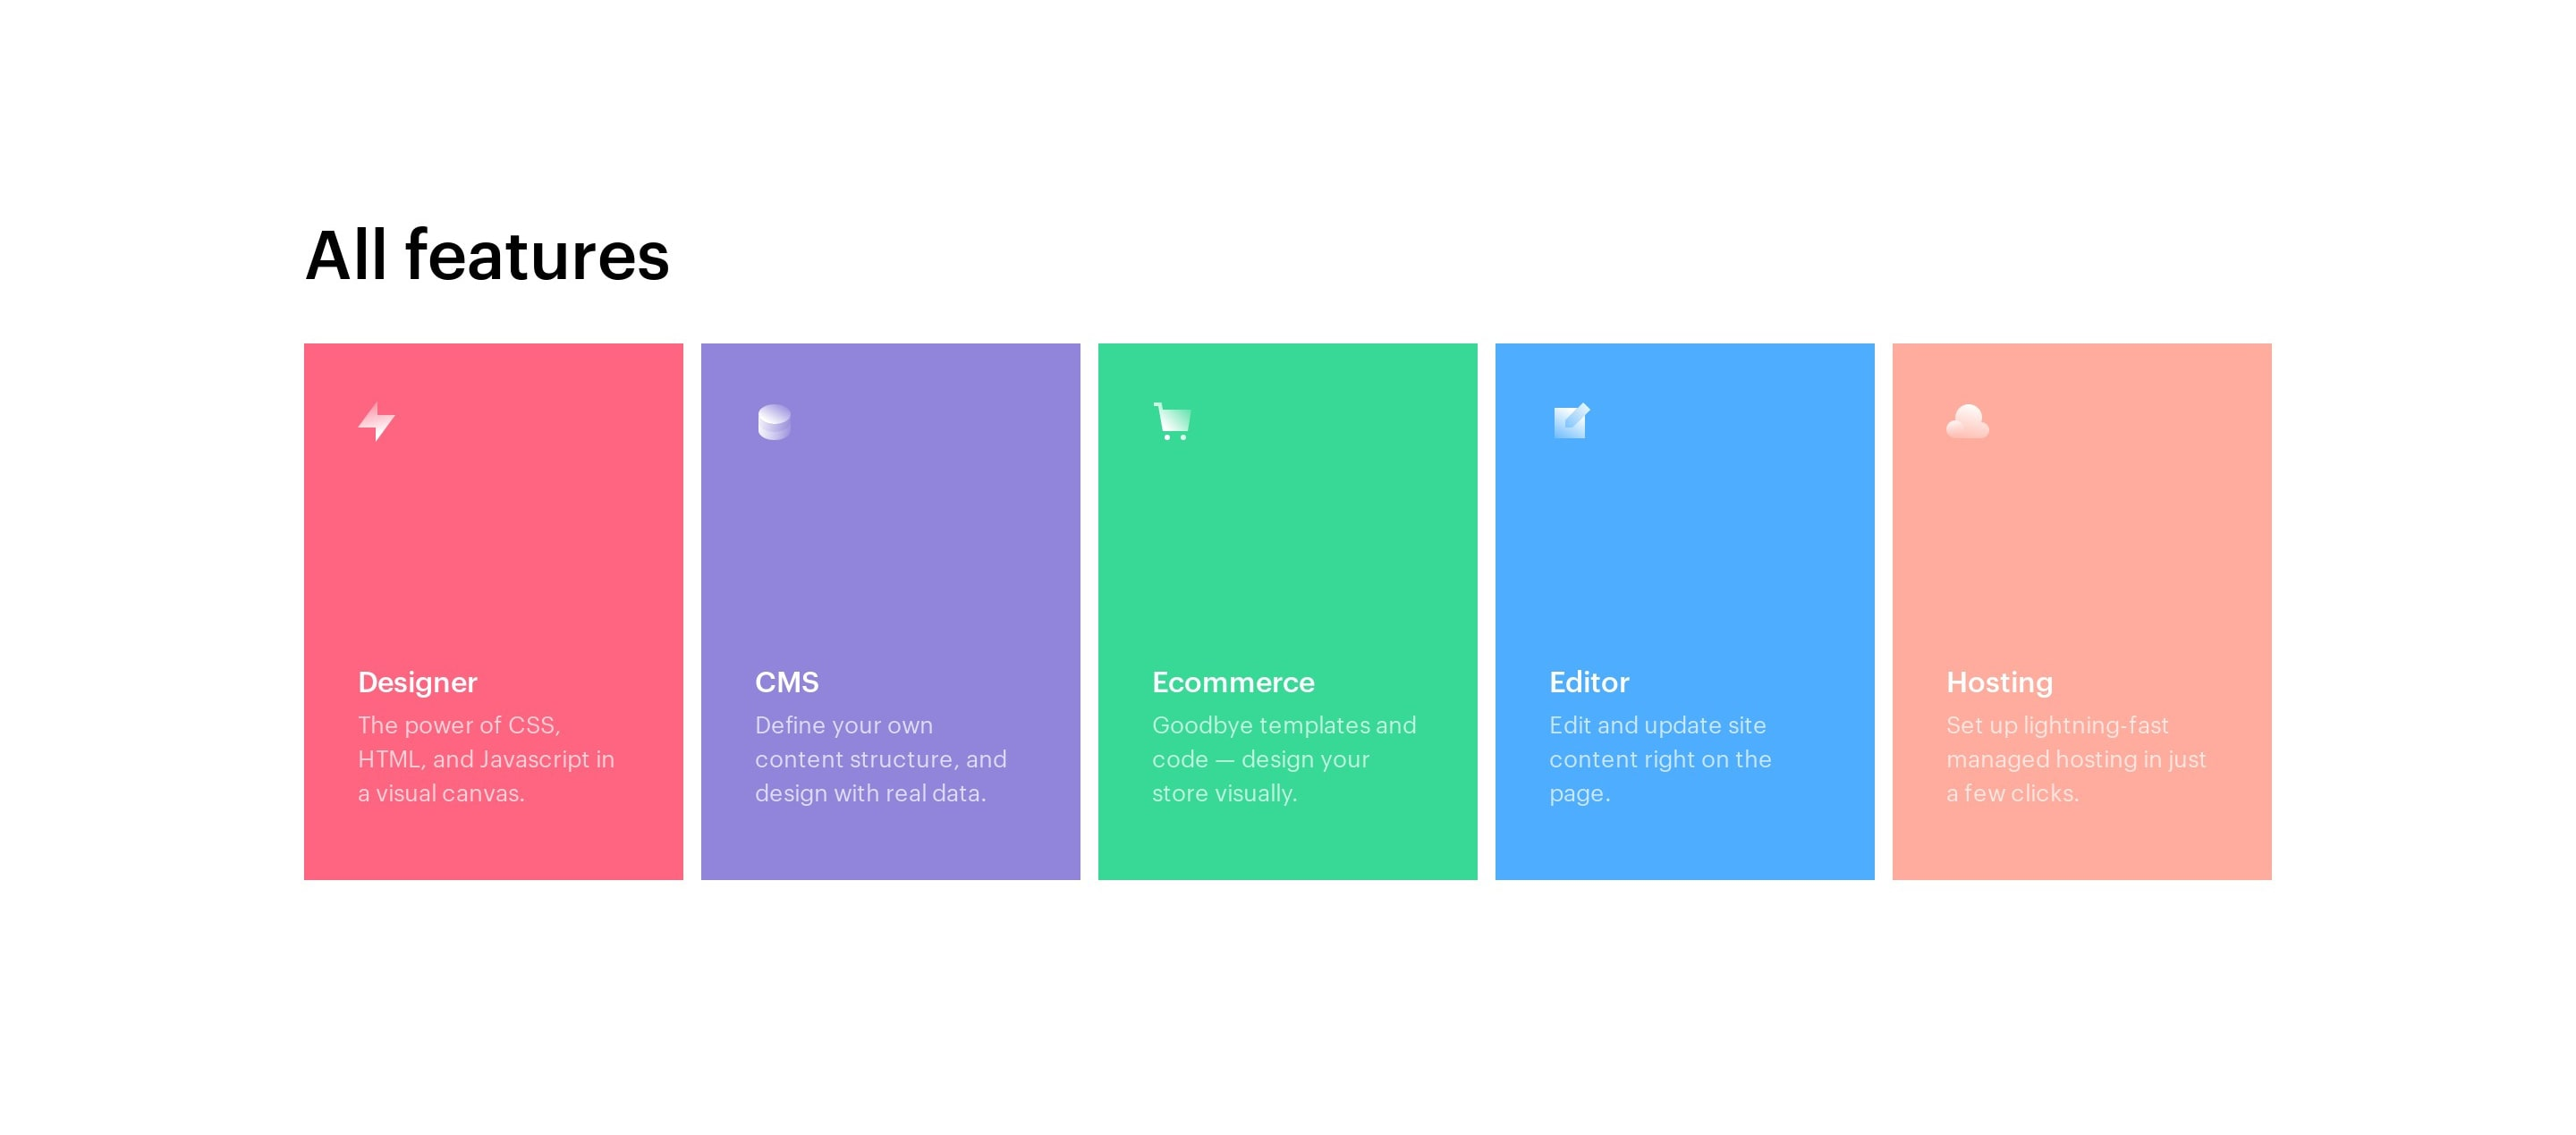 List of Features in Colored Boxes